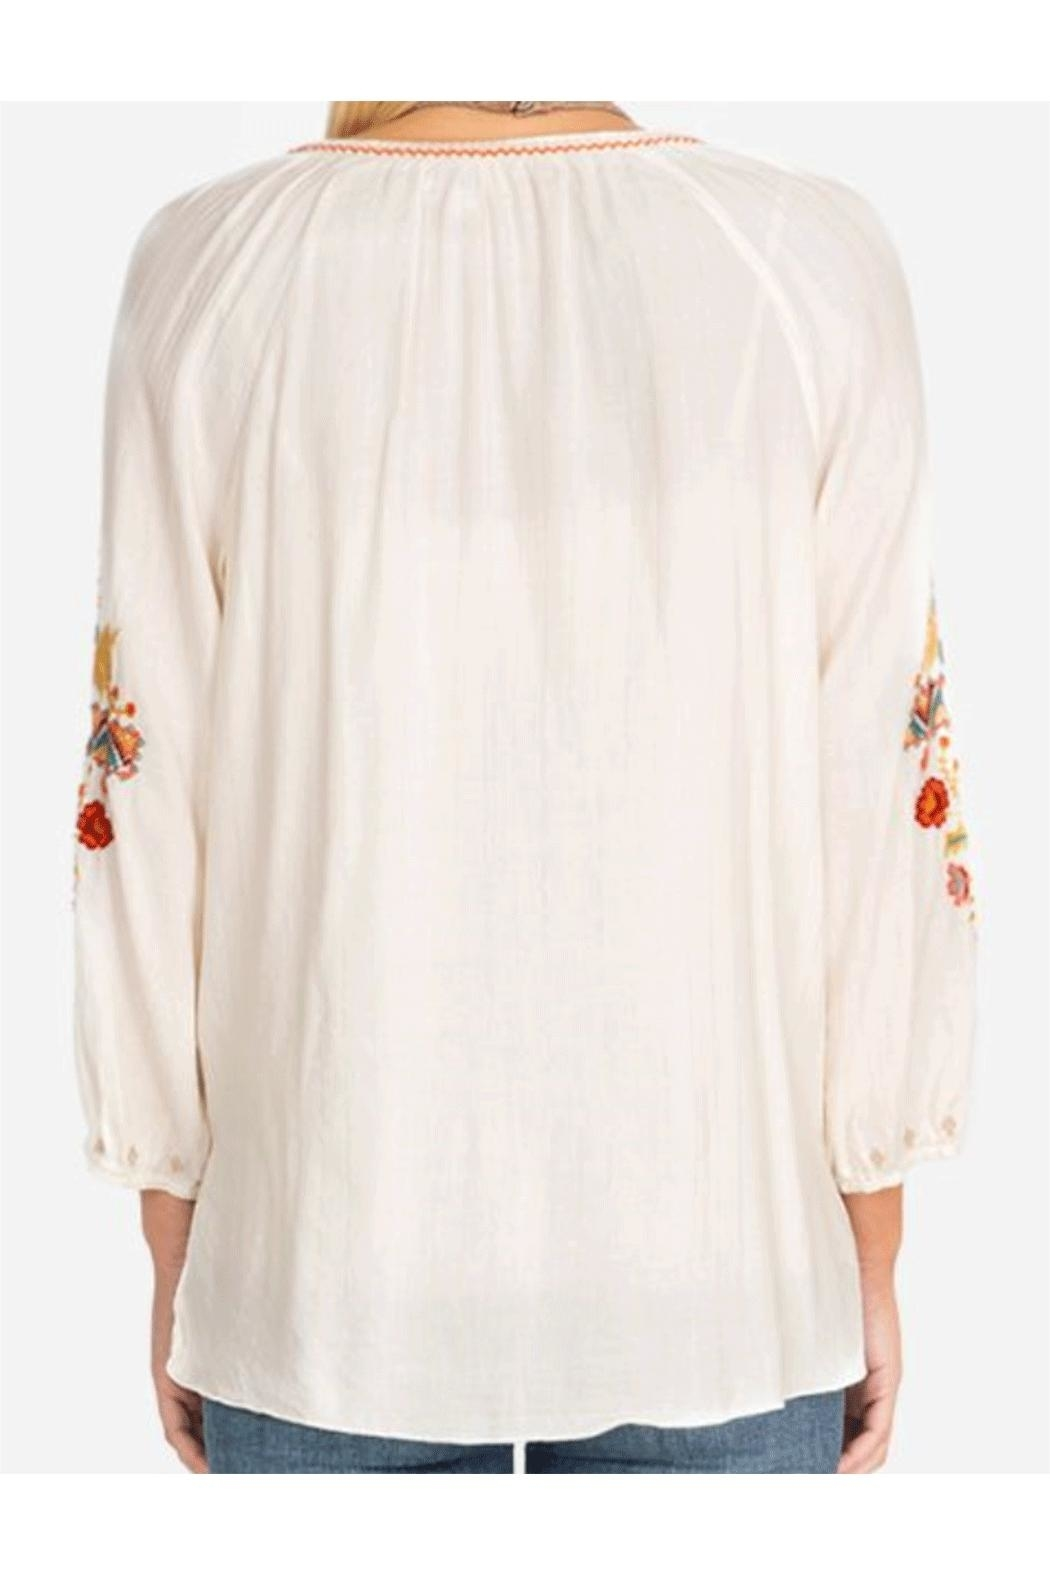 Johnny Was Peasant Blouse - Side Cropped Image